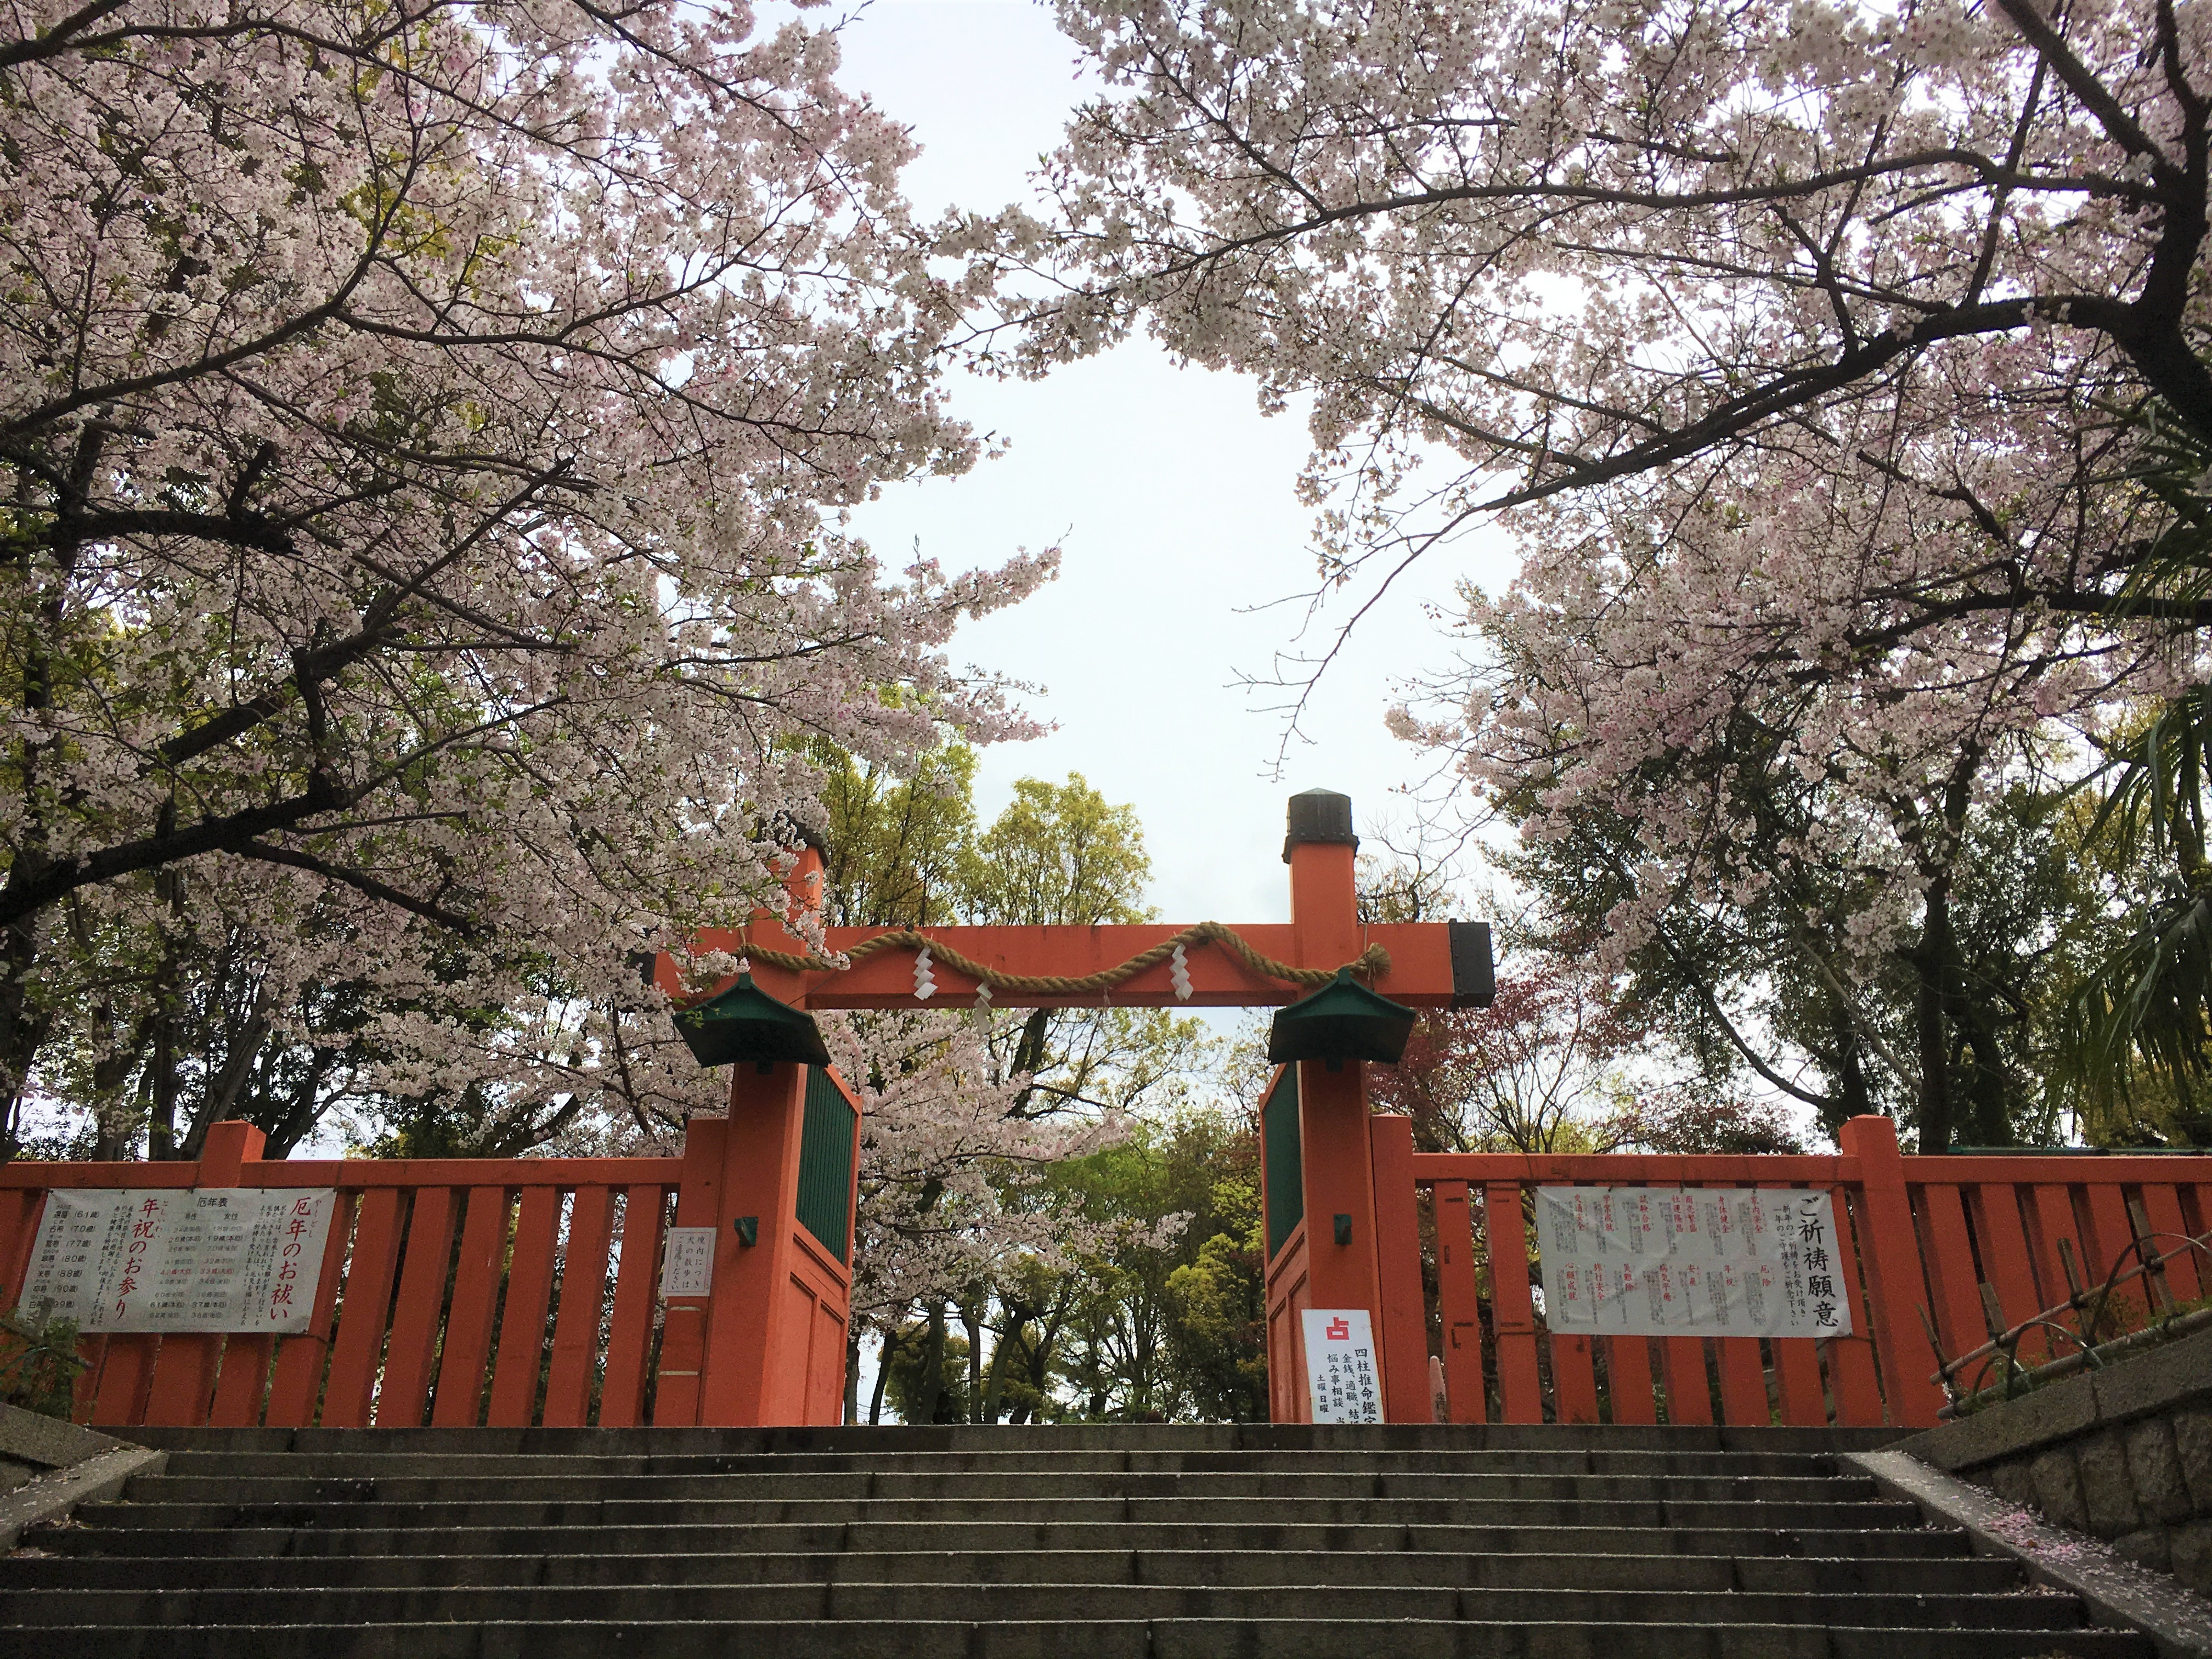 entrance of Japanese shrine with red and black coloring in and cherry blossoms